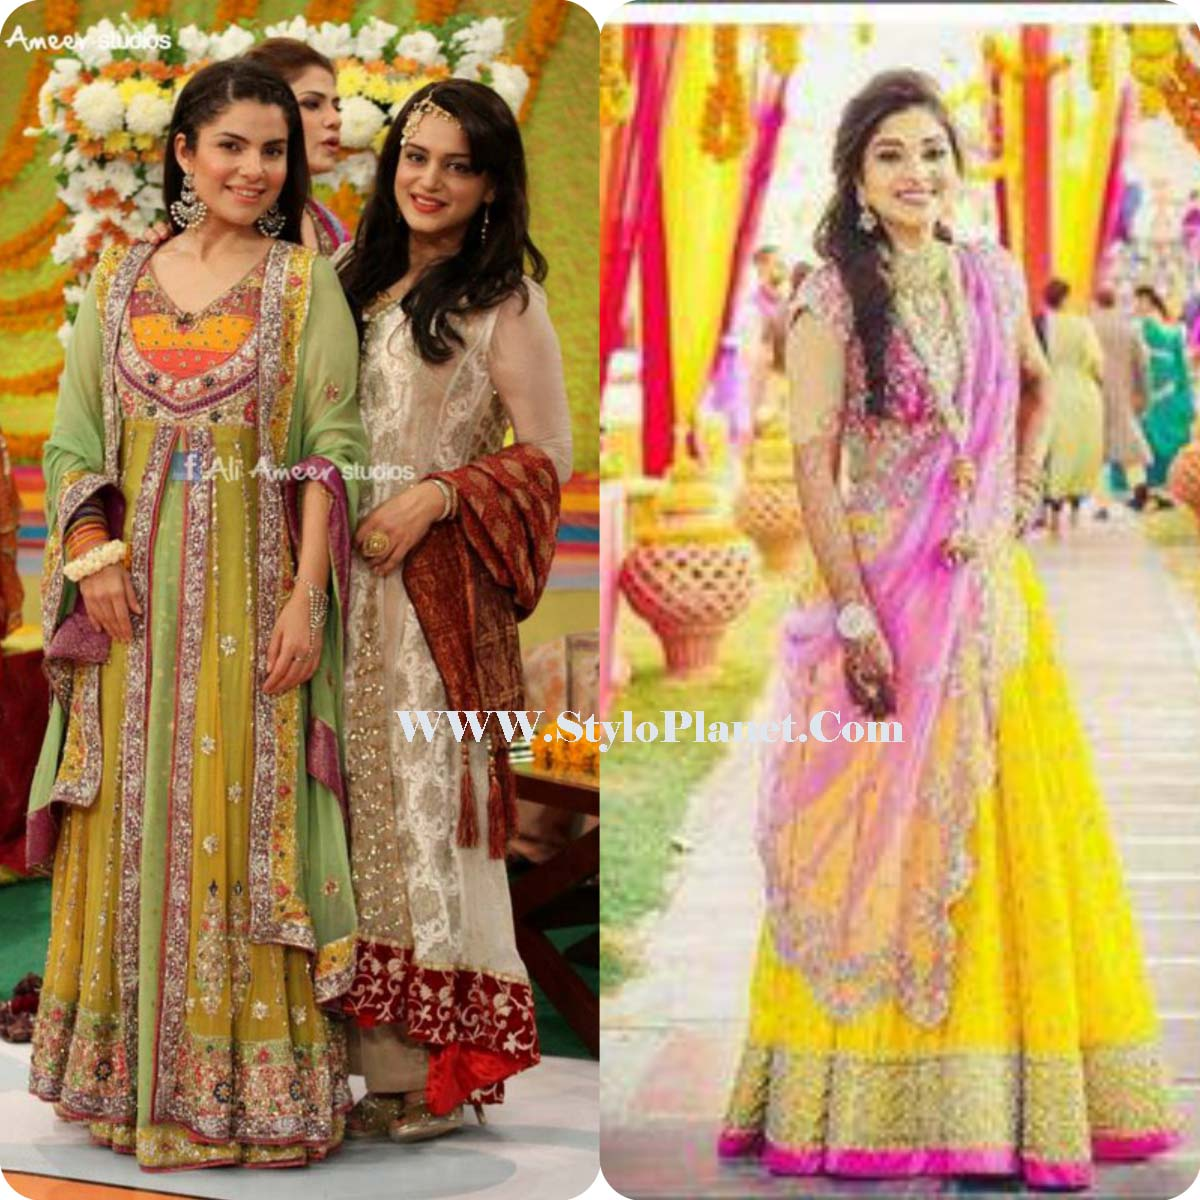 Mayon dresses 2018 images